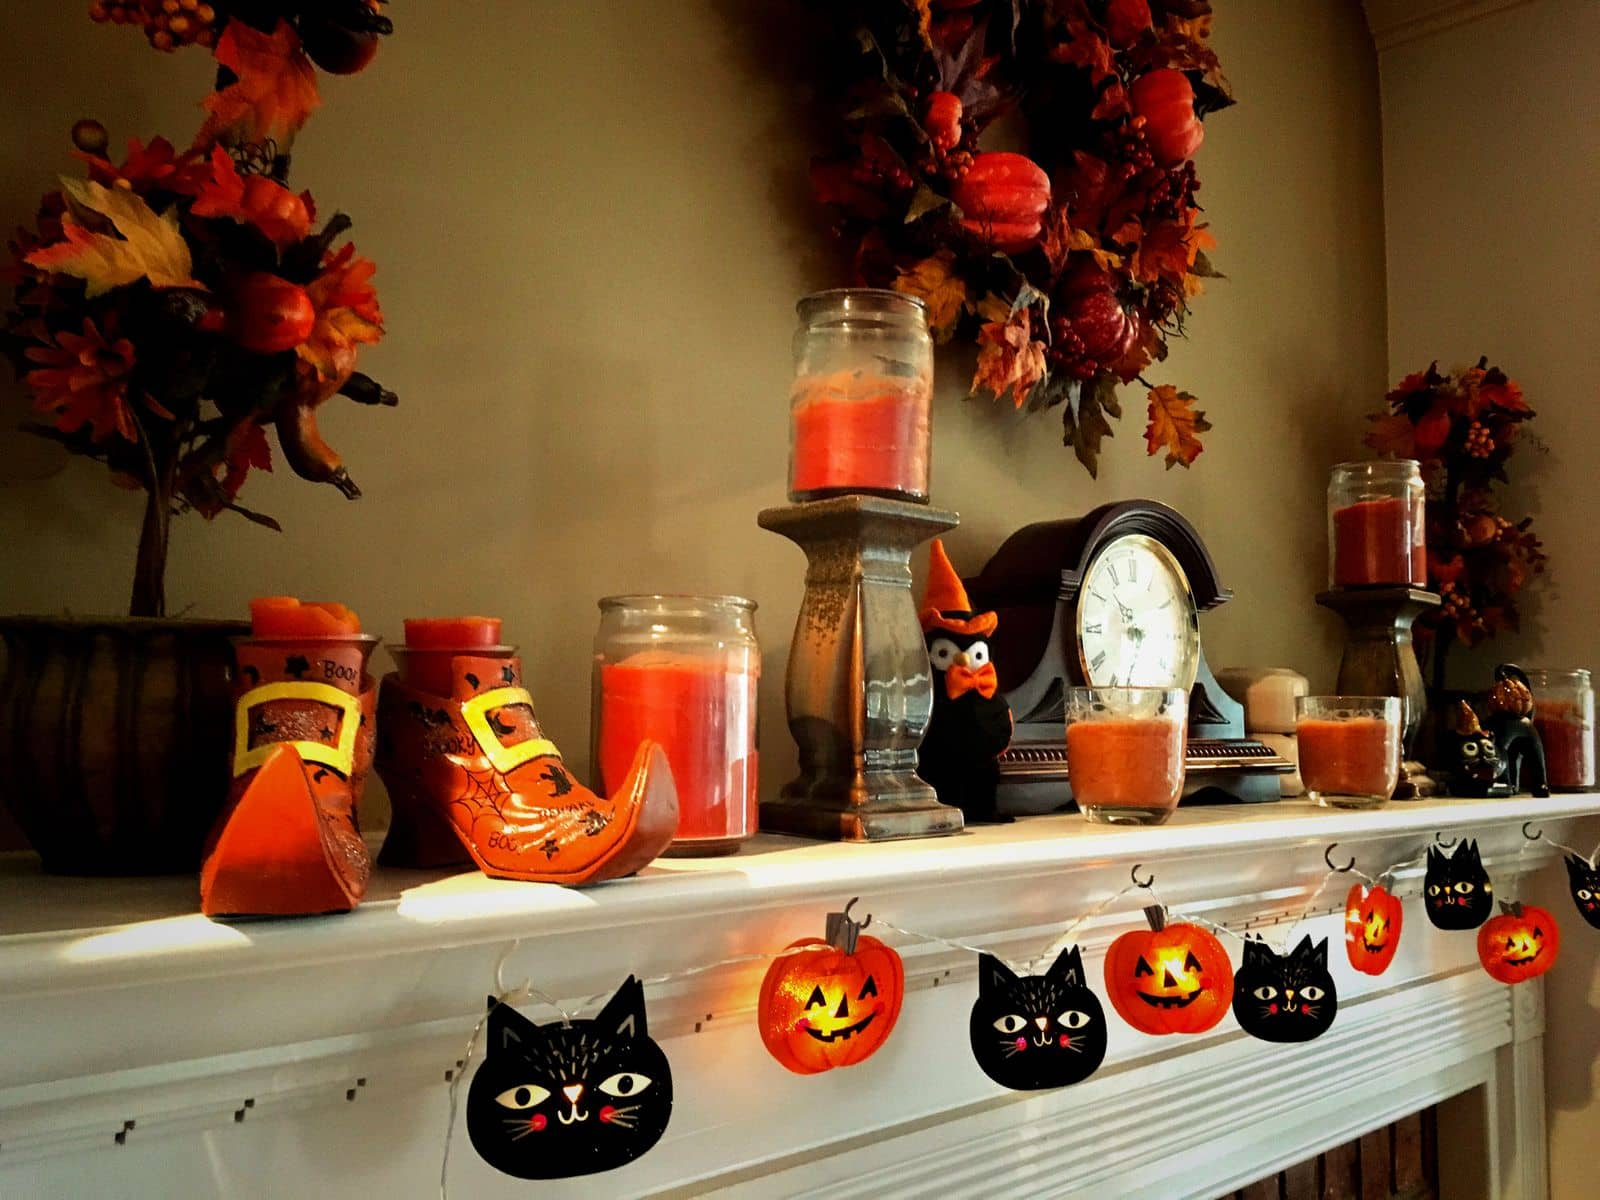 Fireplace mantel decorated for Halloween